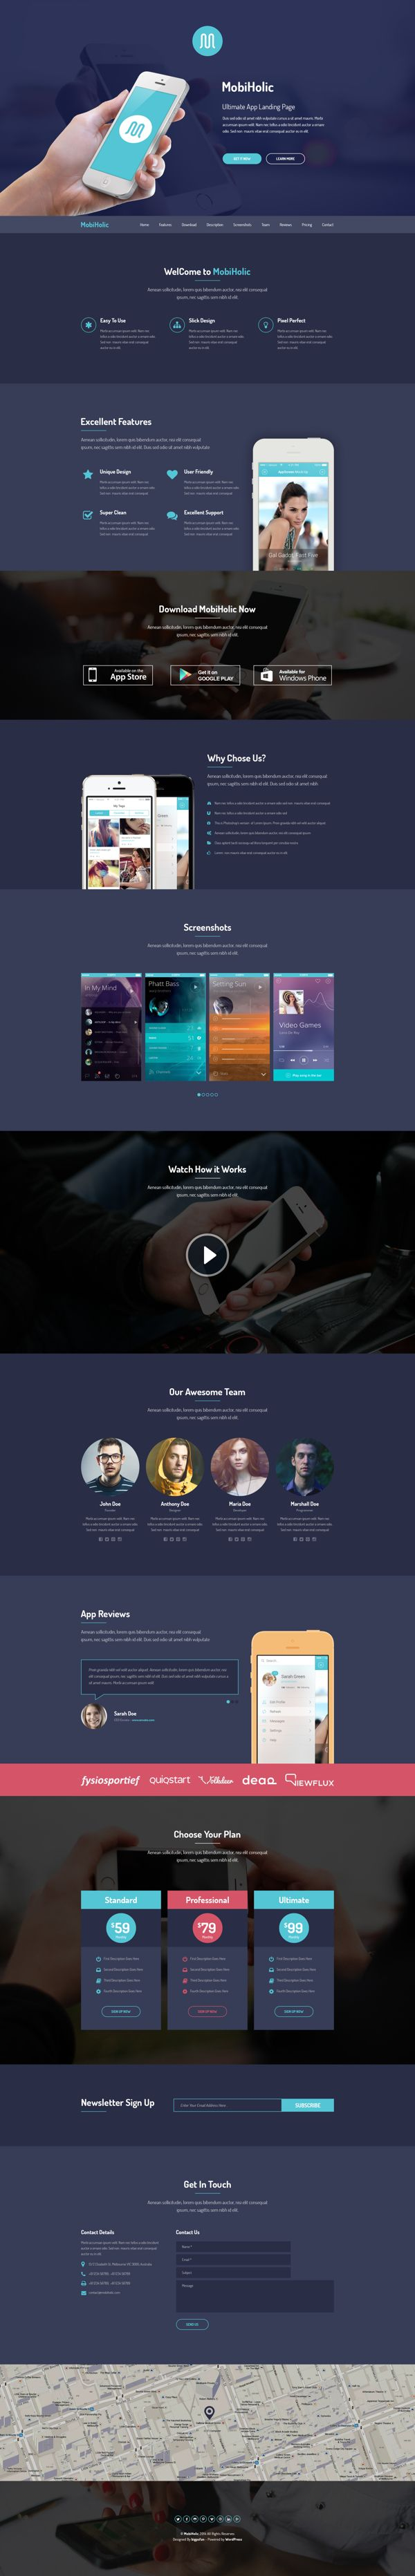 MobiHolic - Ultimate App Landing Page PSD Template by Akbar Hossain, via Behance